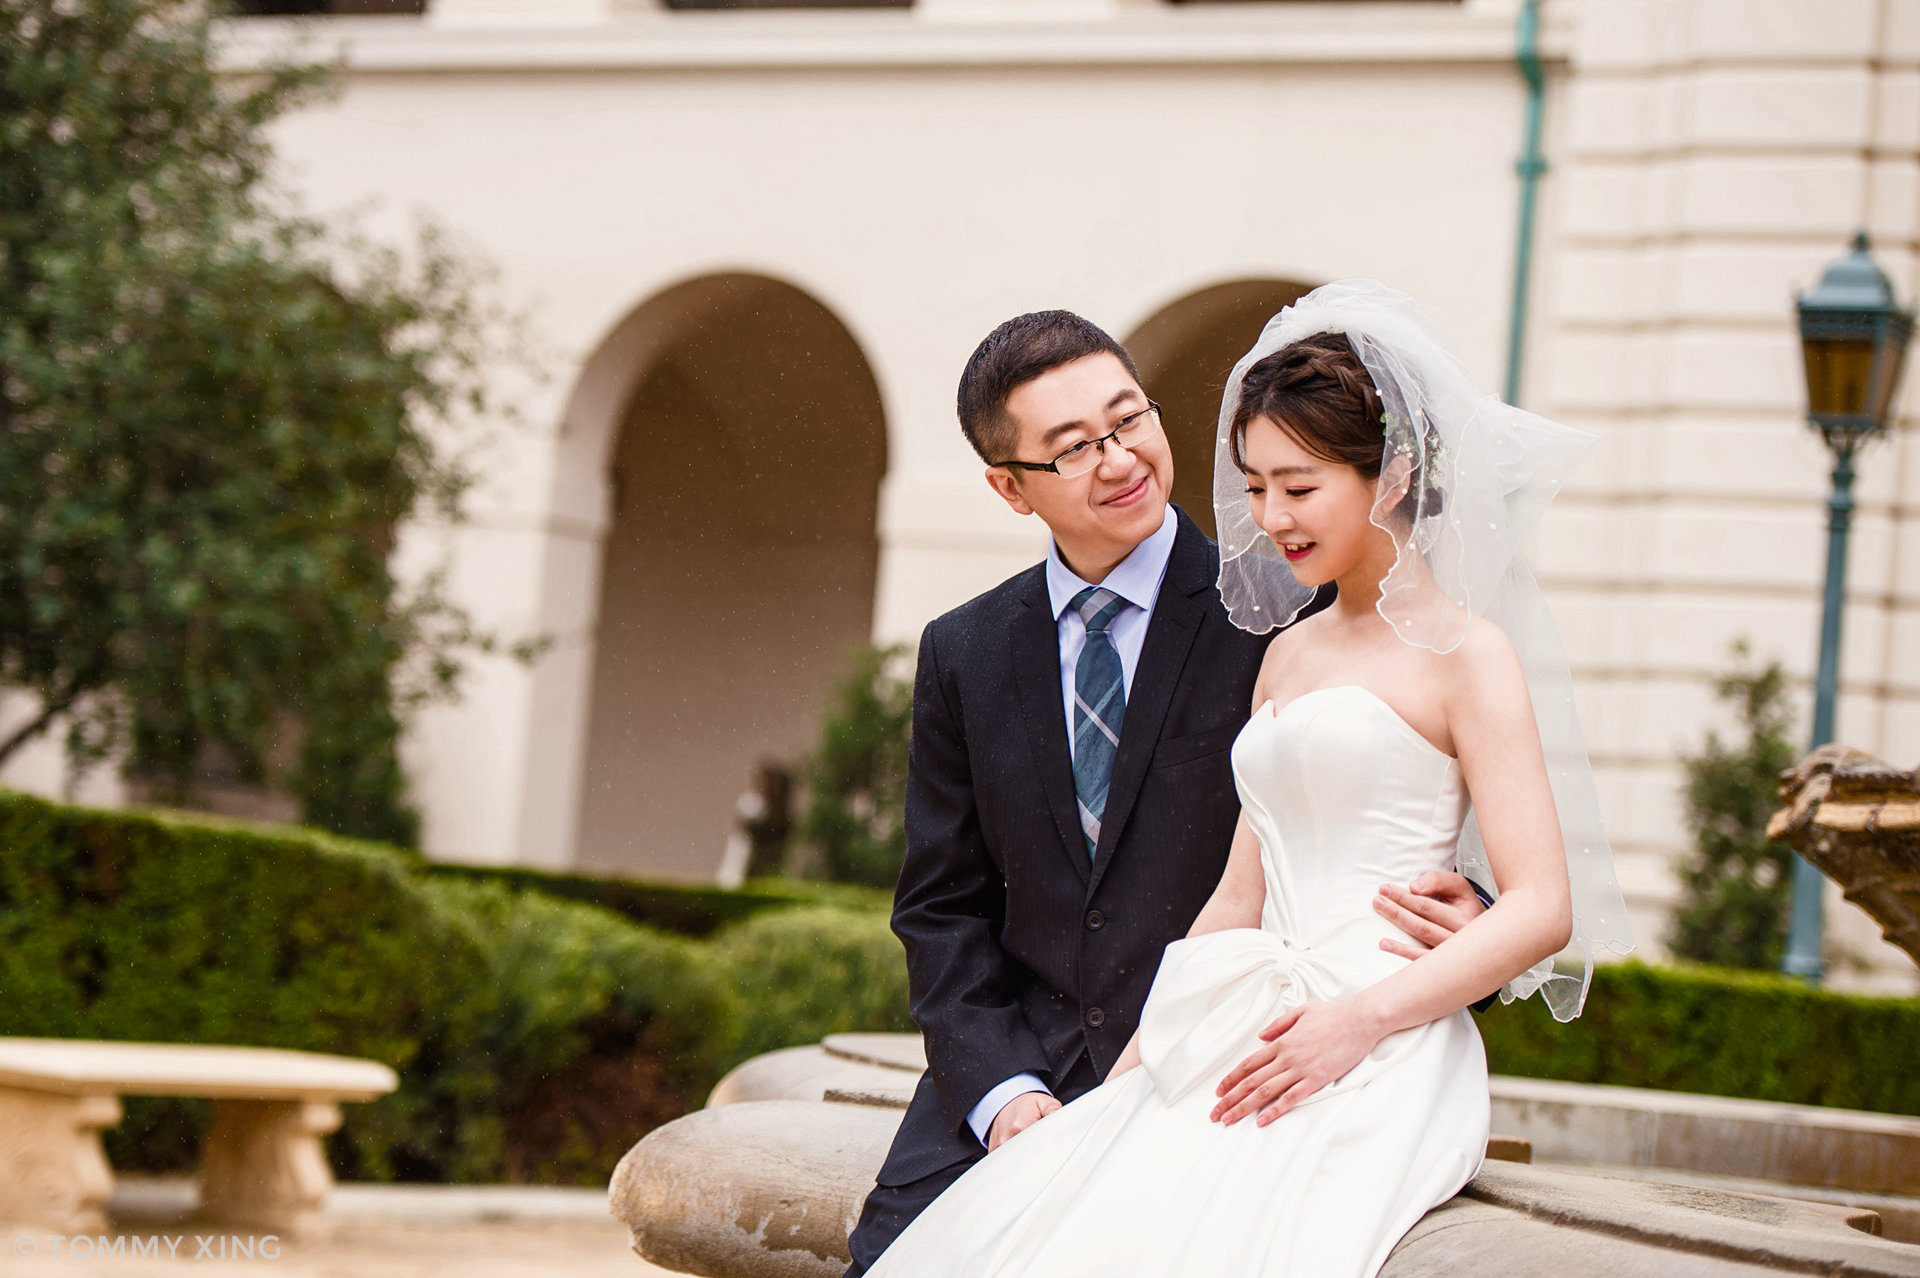 旧金山洛杉矶婚纱照 Tommy Xing Wedding Photography 07.jpg